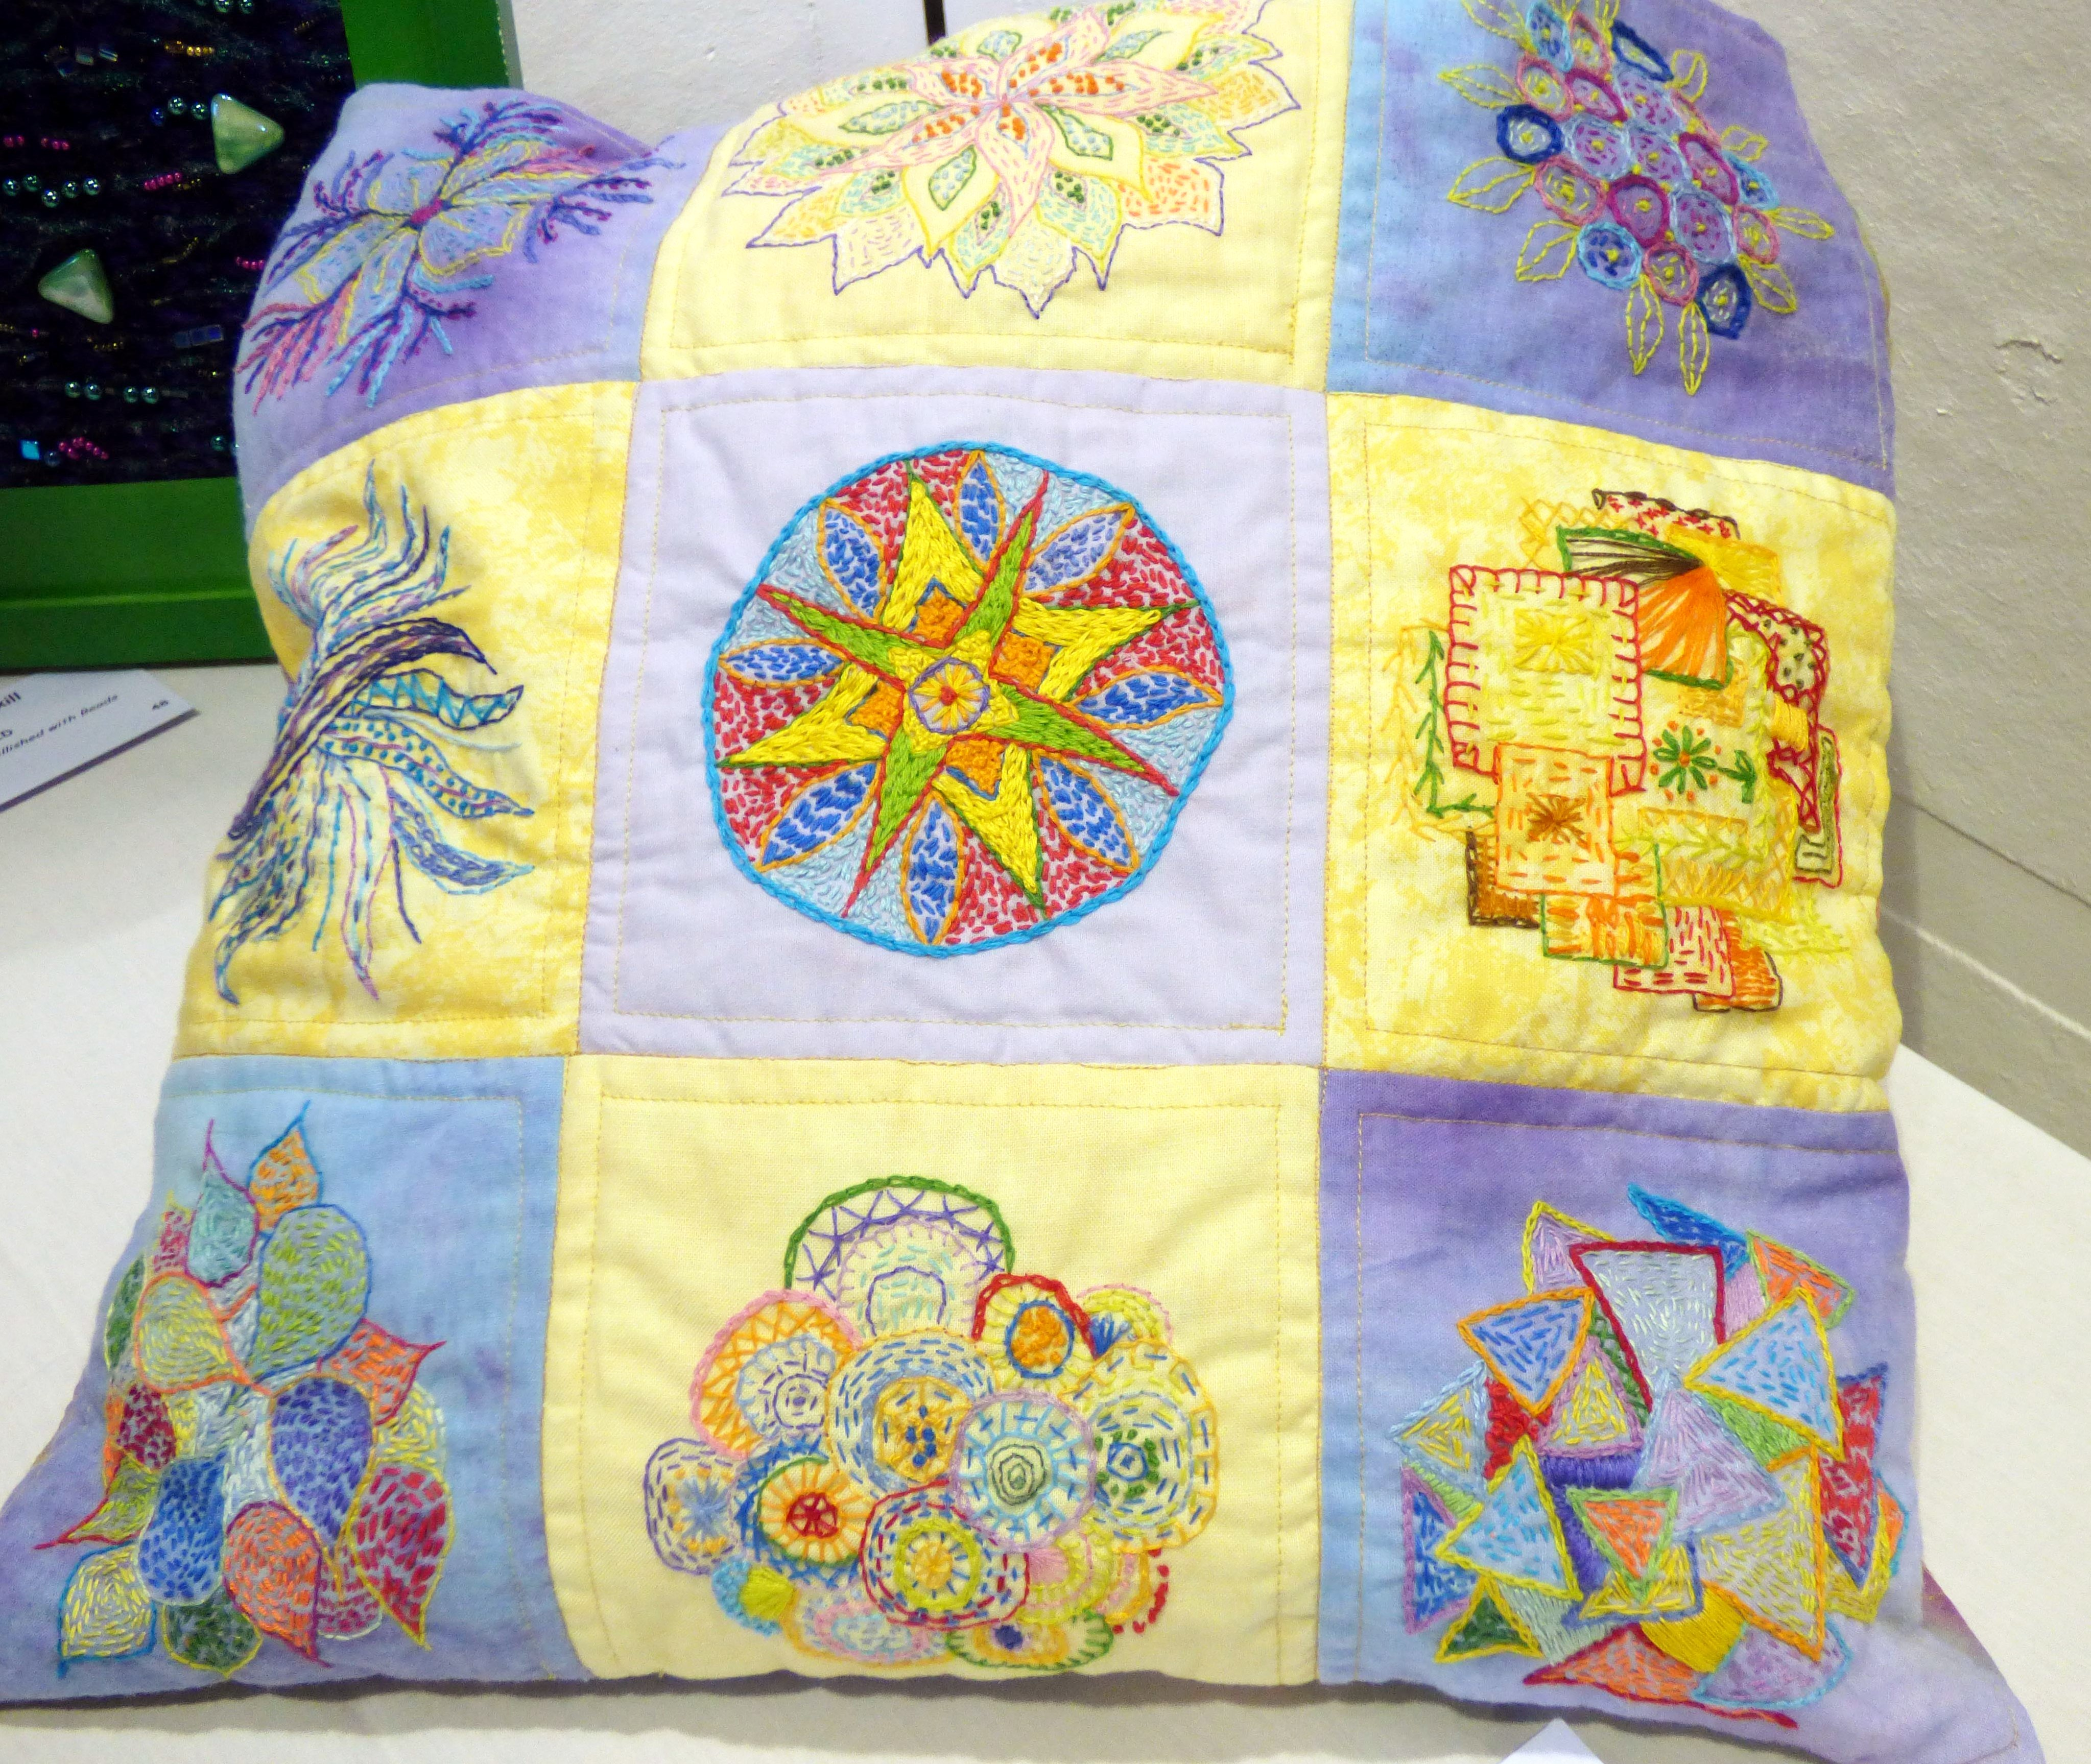 FOUR SEASONS SHOPPING BAG by Roselie Gardner, N.wales EG, patched & quilted with hand embroidery